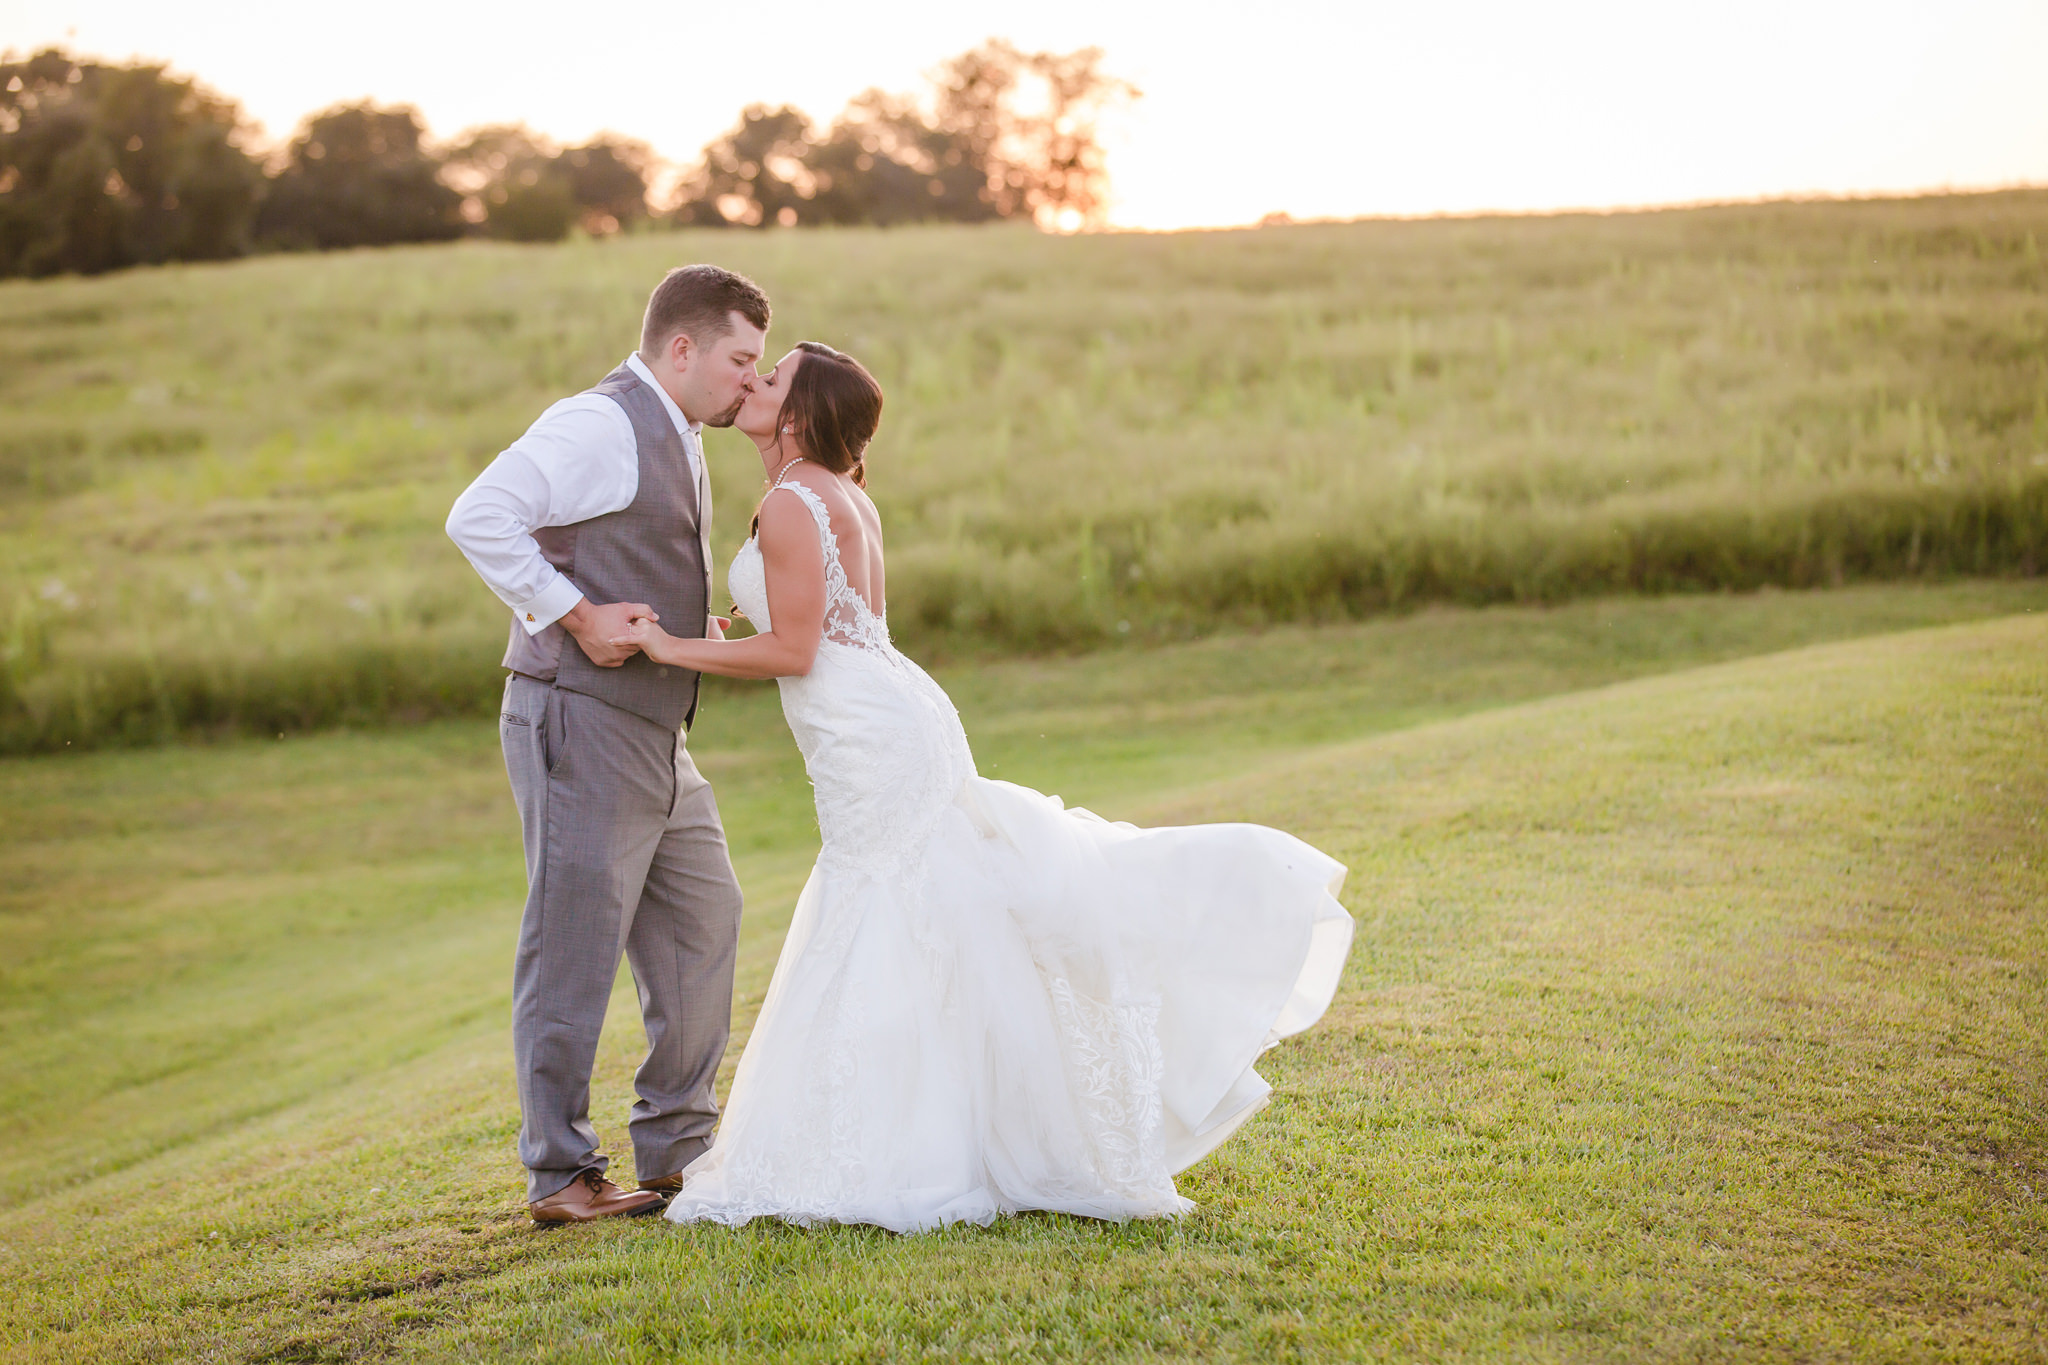 Bride and groom dance and kiss during portraits at their White Barn wedding